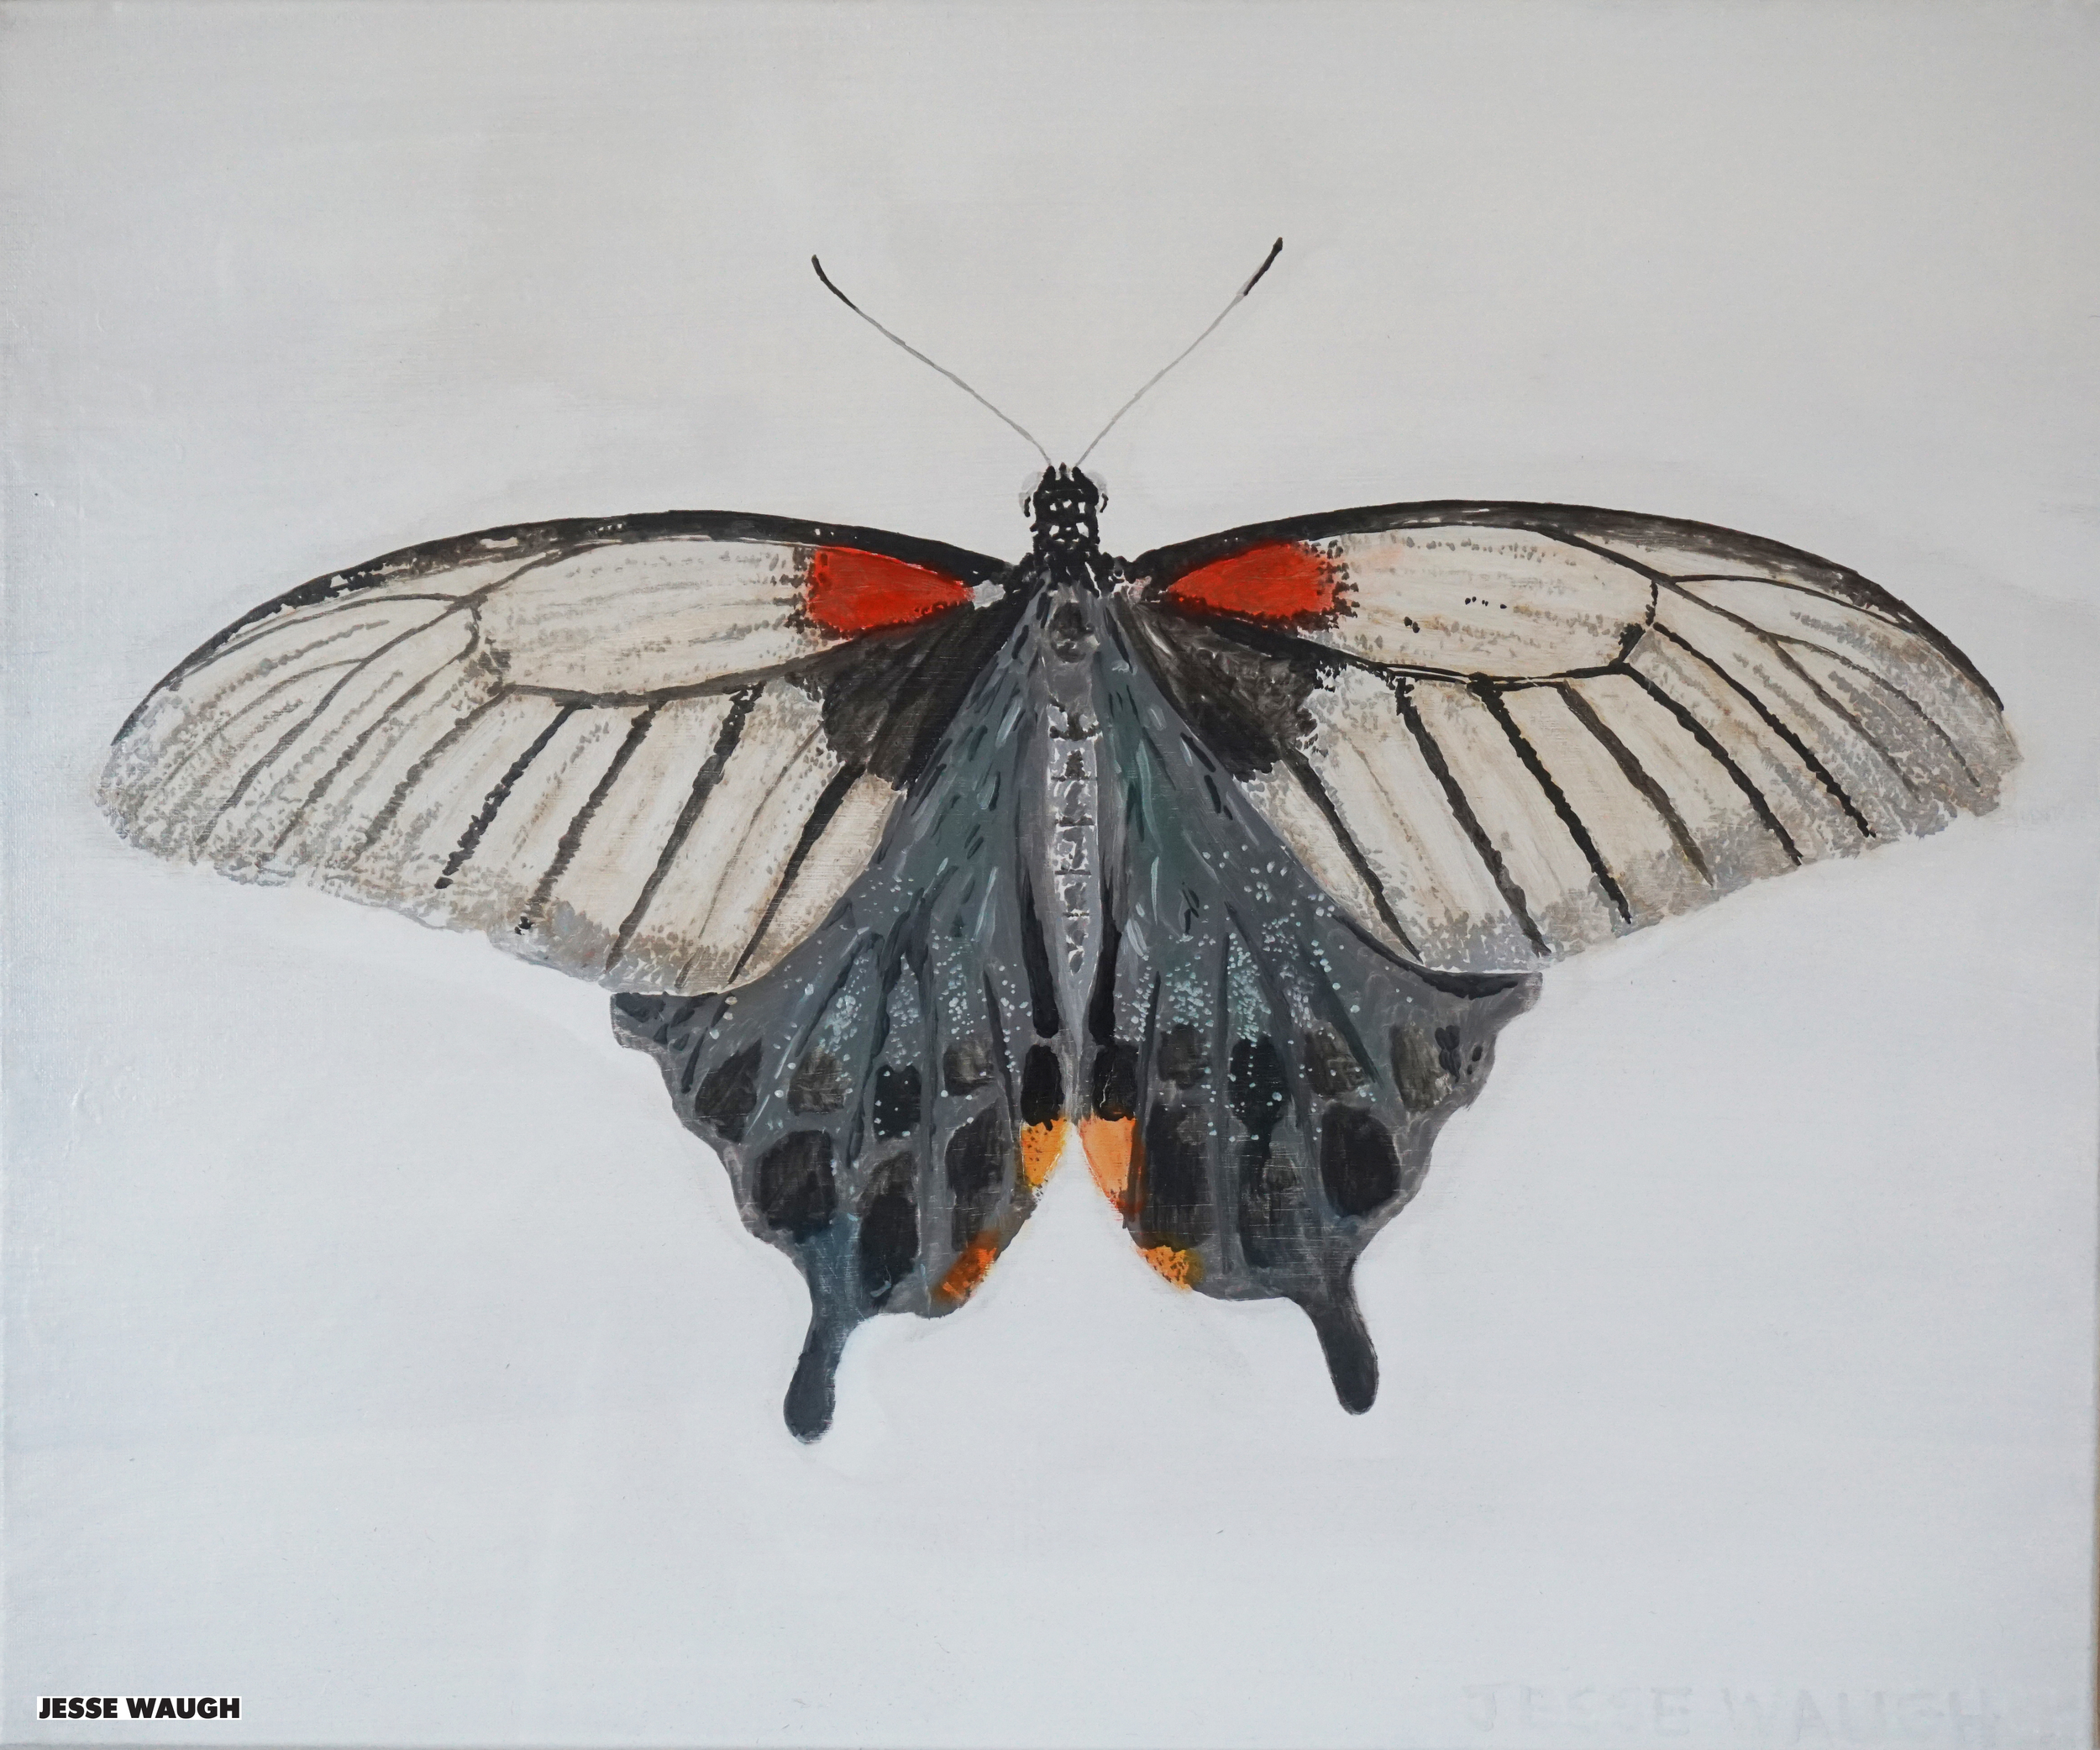 JESSE WAUGH   PAPILIO MEMNON F ANCEUS FEMALE BUTTERFLY   BUTTERFLY 1 2015 OIL ON CANVAS